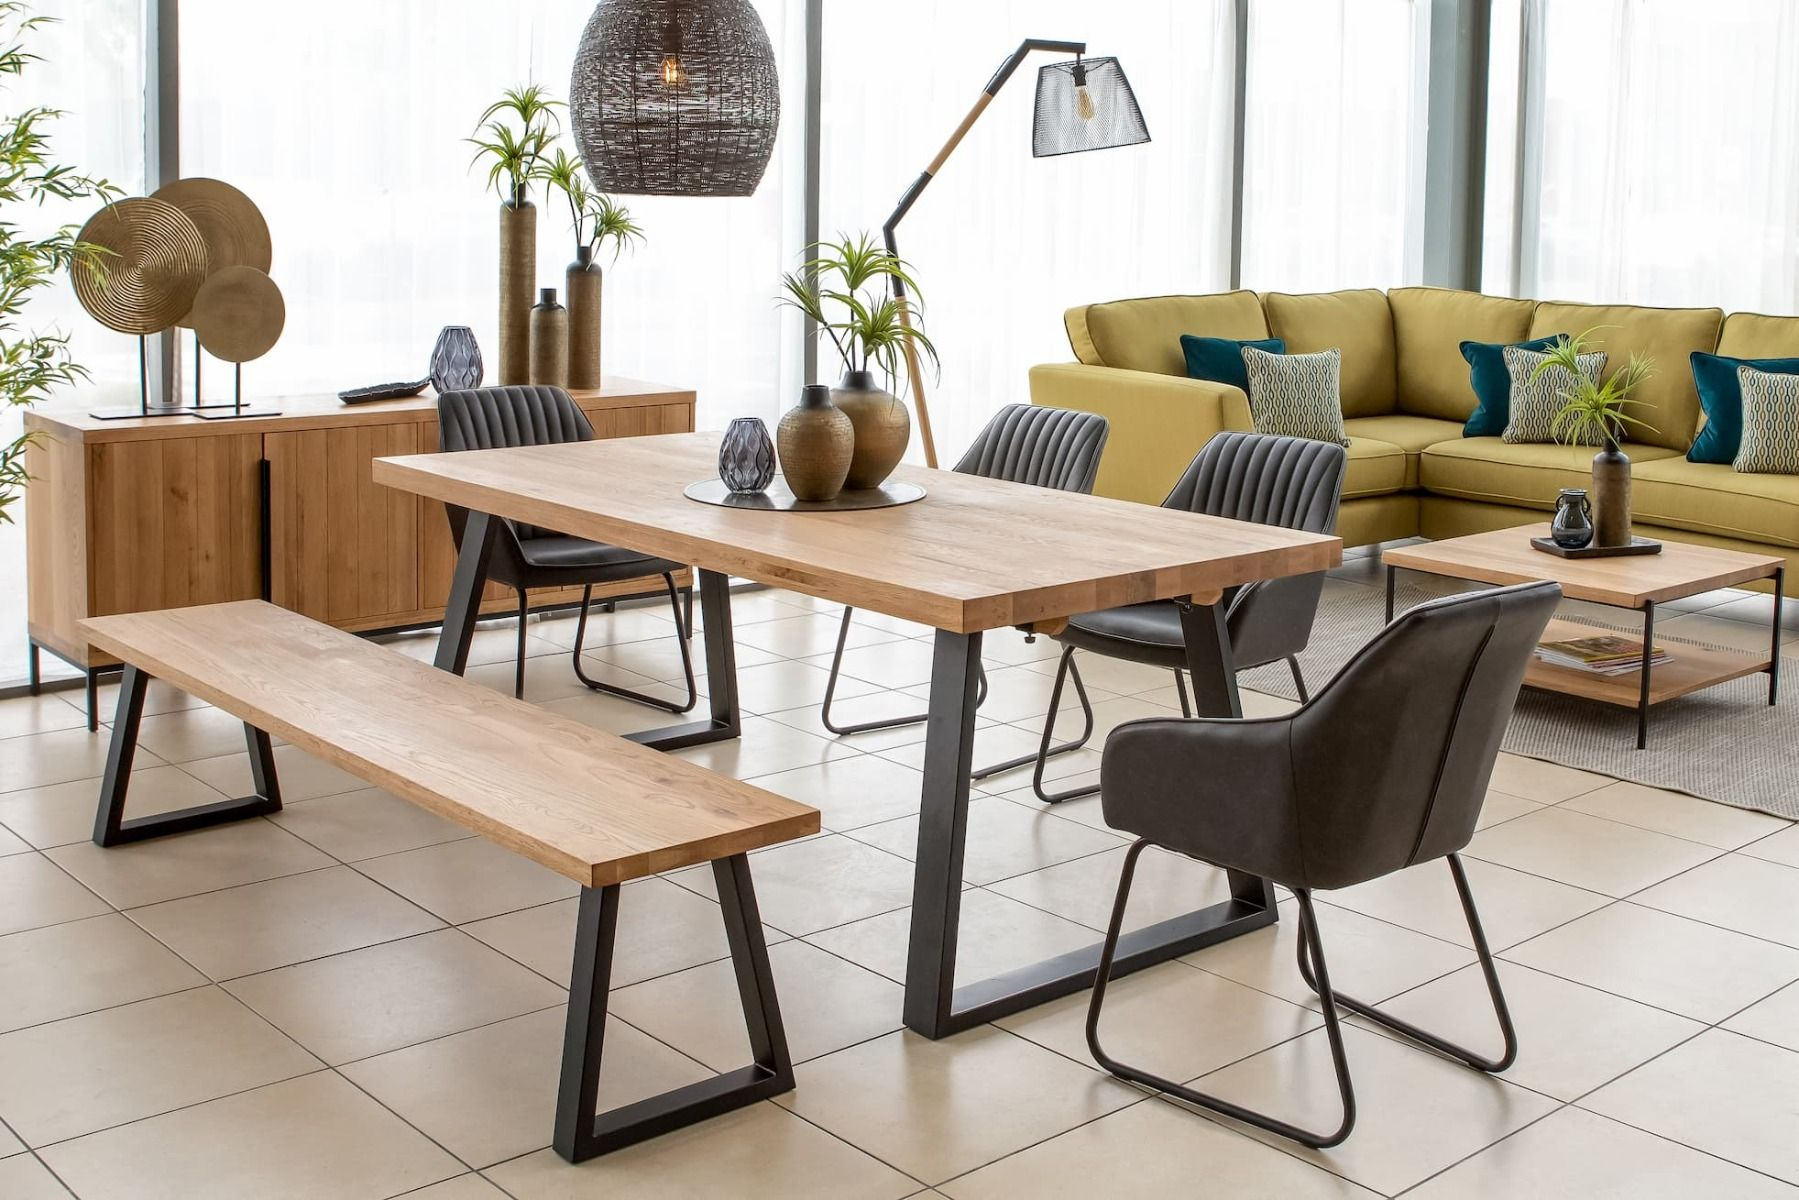 a wooden dining table from ez living furniture